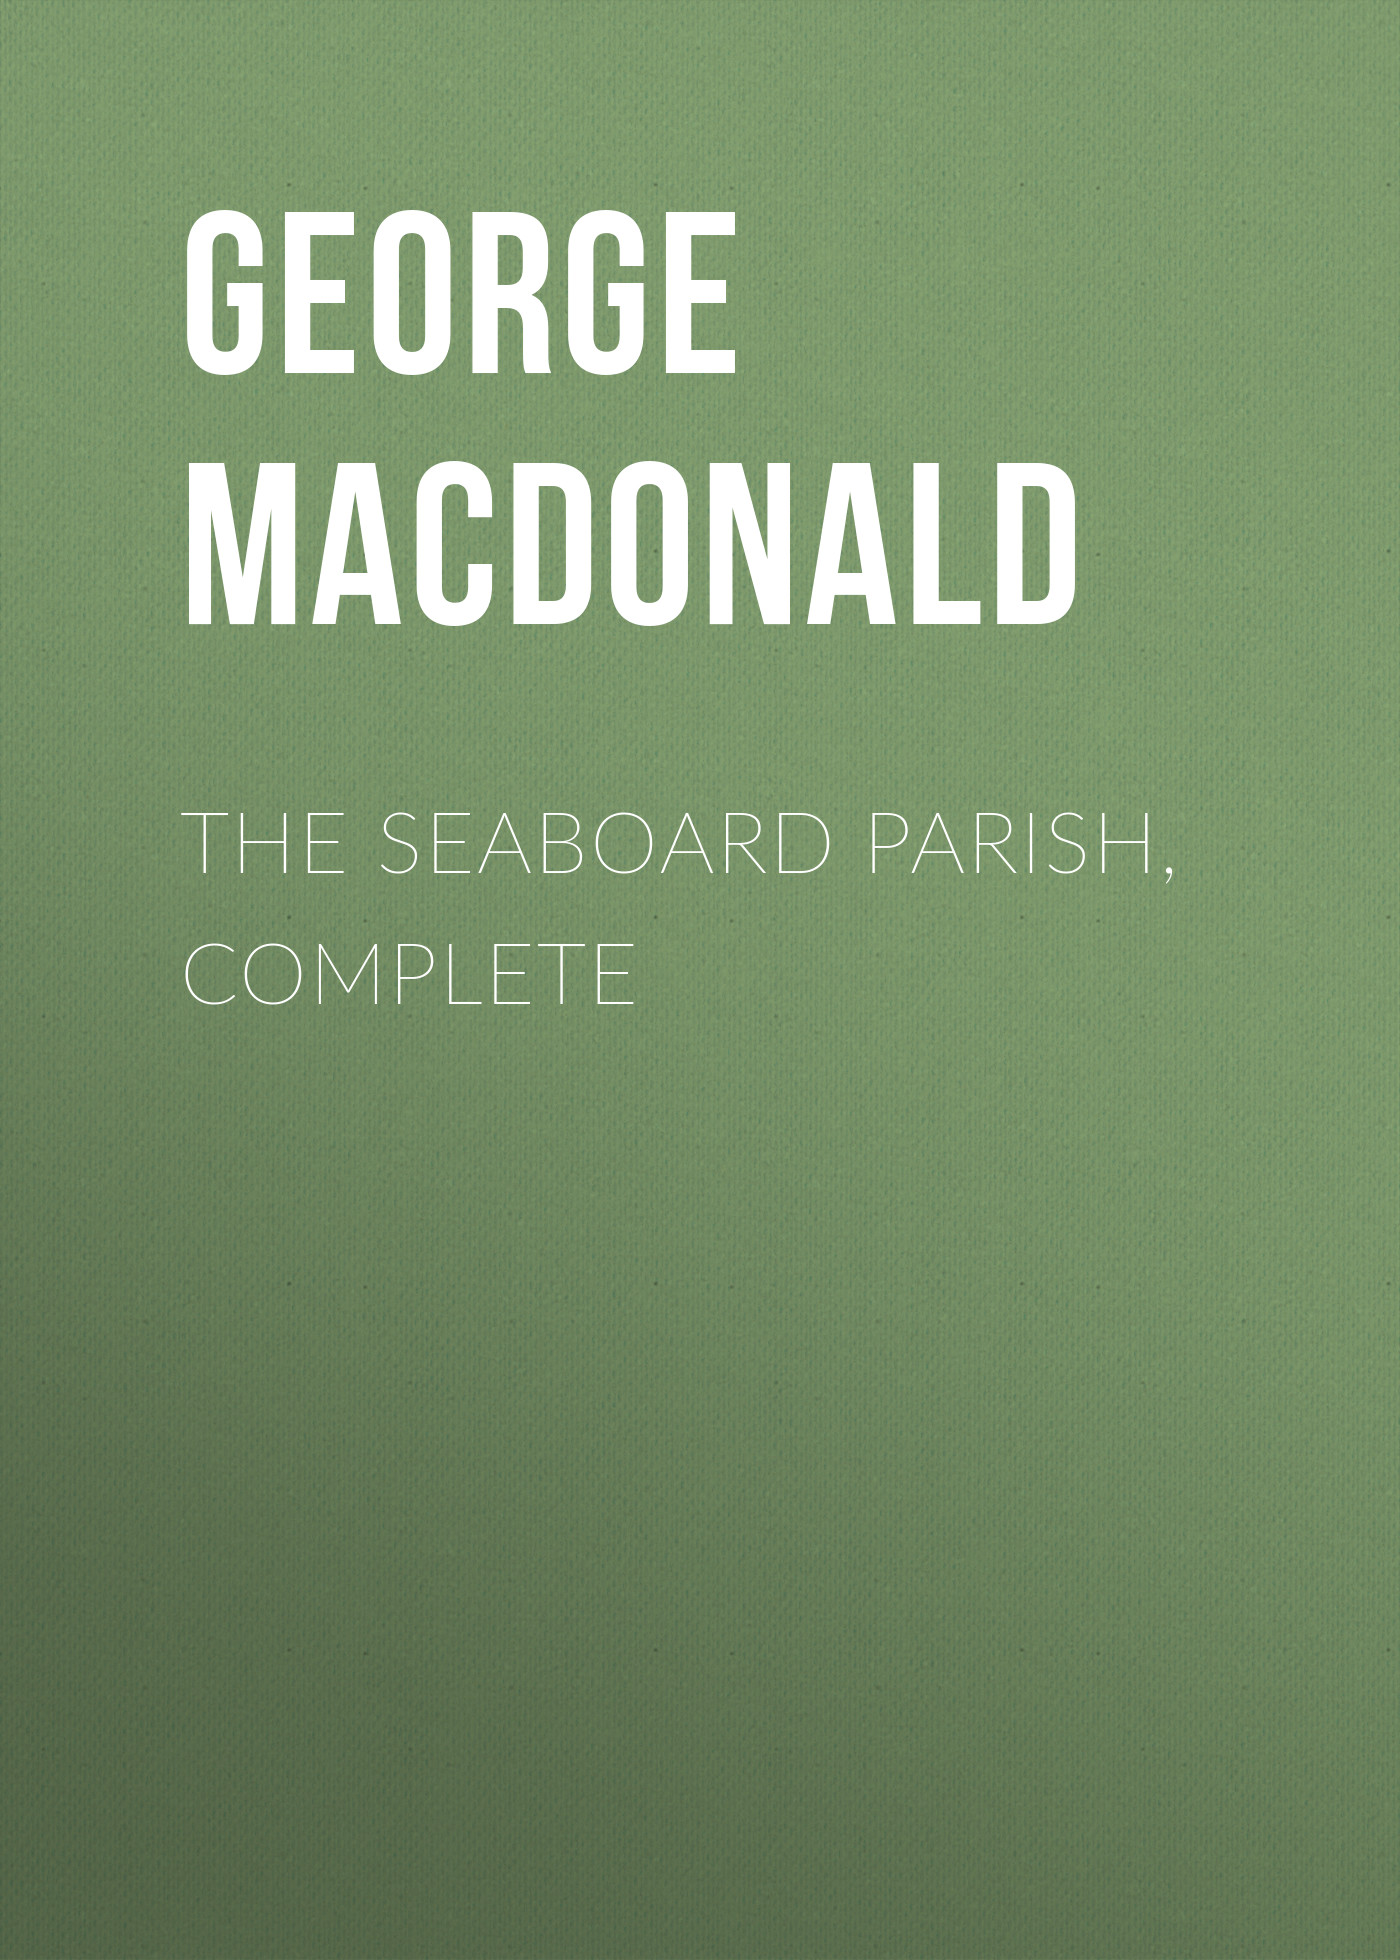 George MacDonald The Seaboard Parish, Complete george macdonald the seaboard parish volume 1